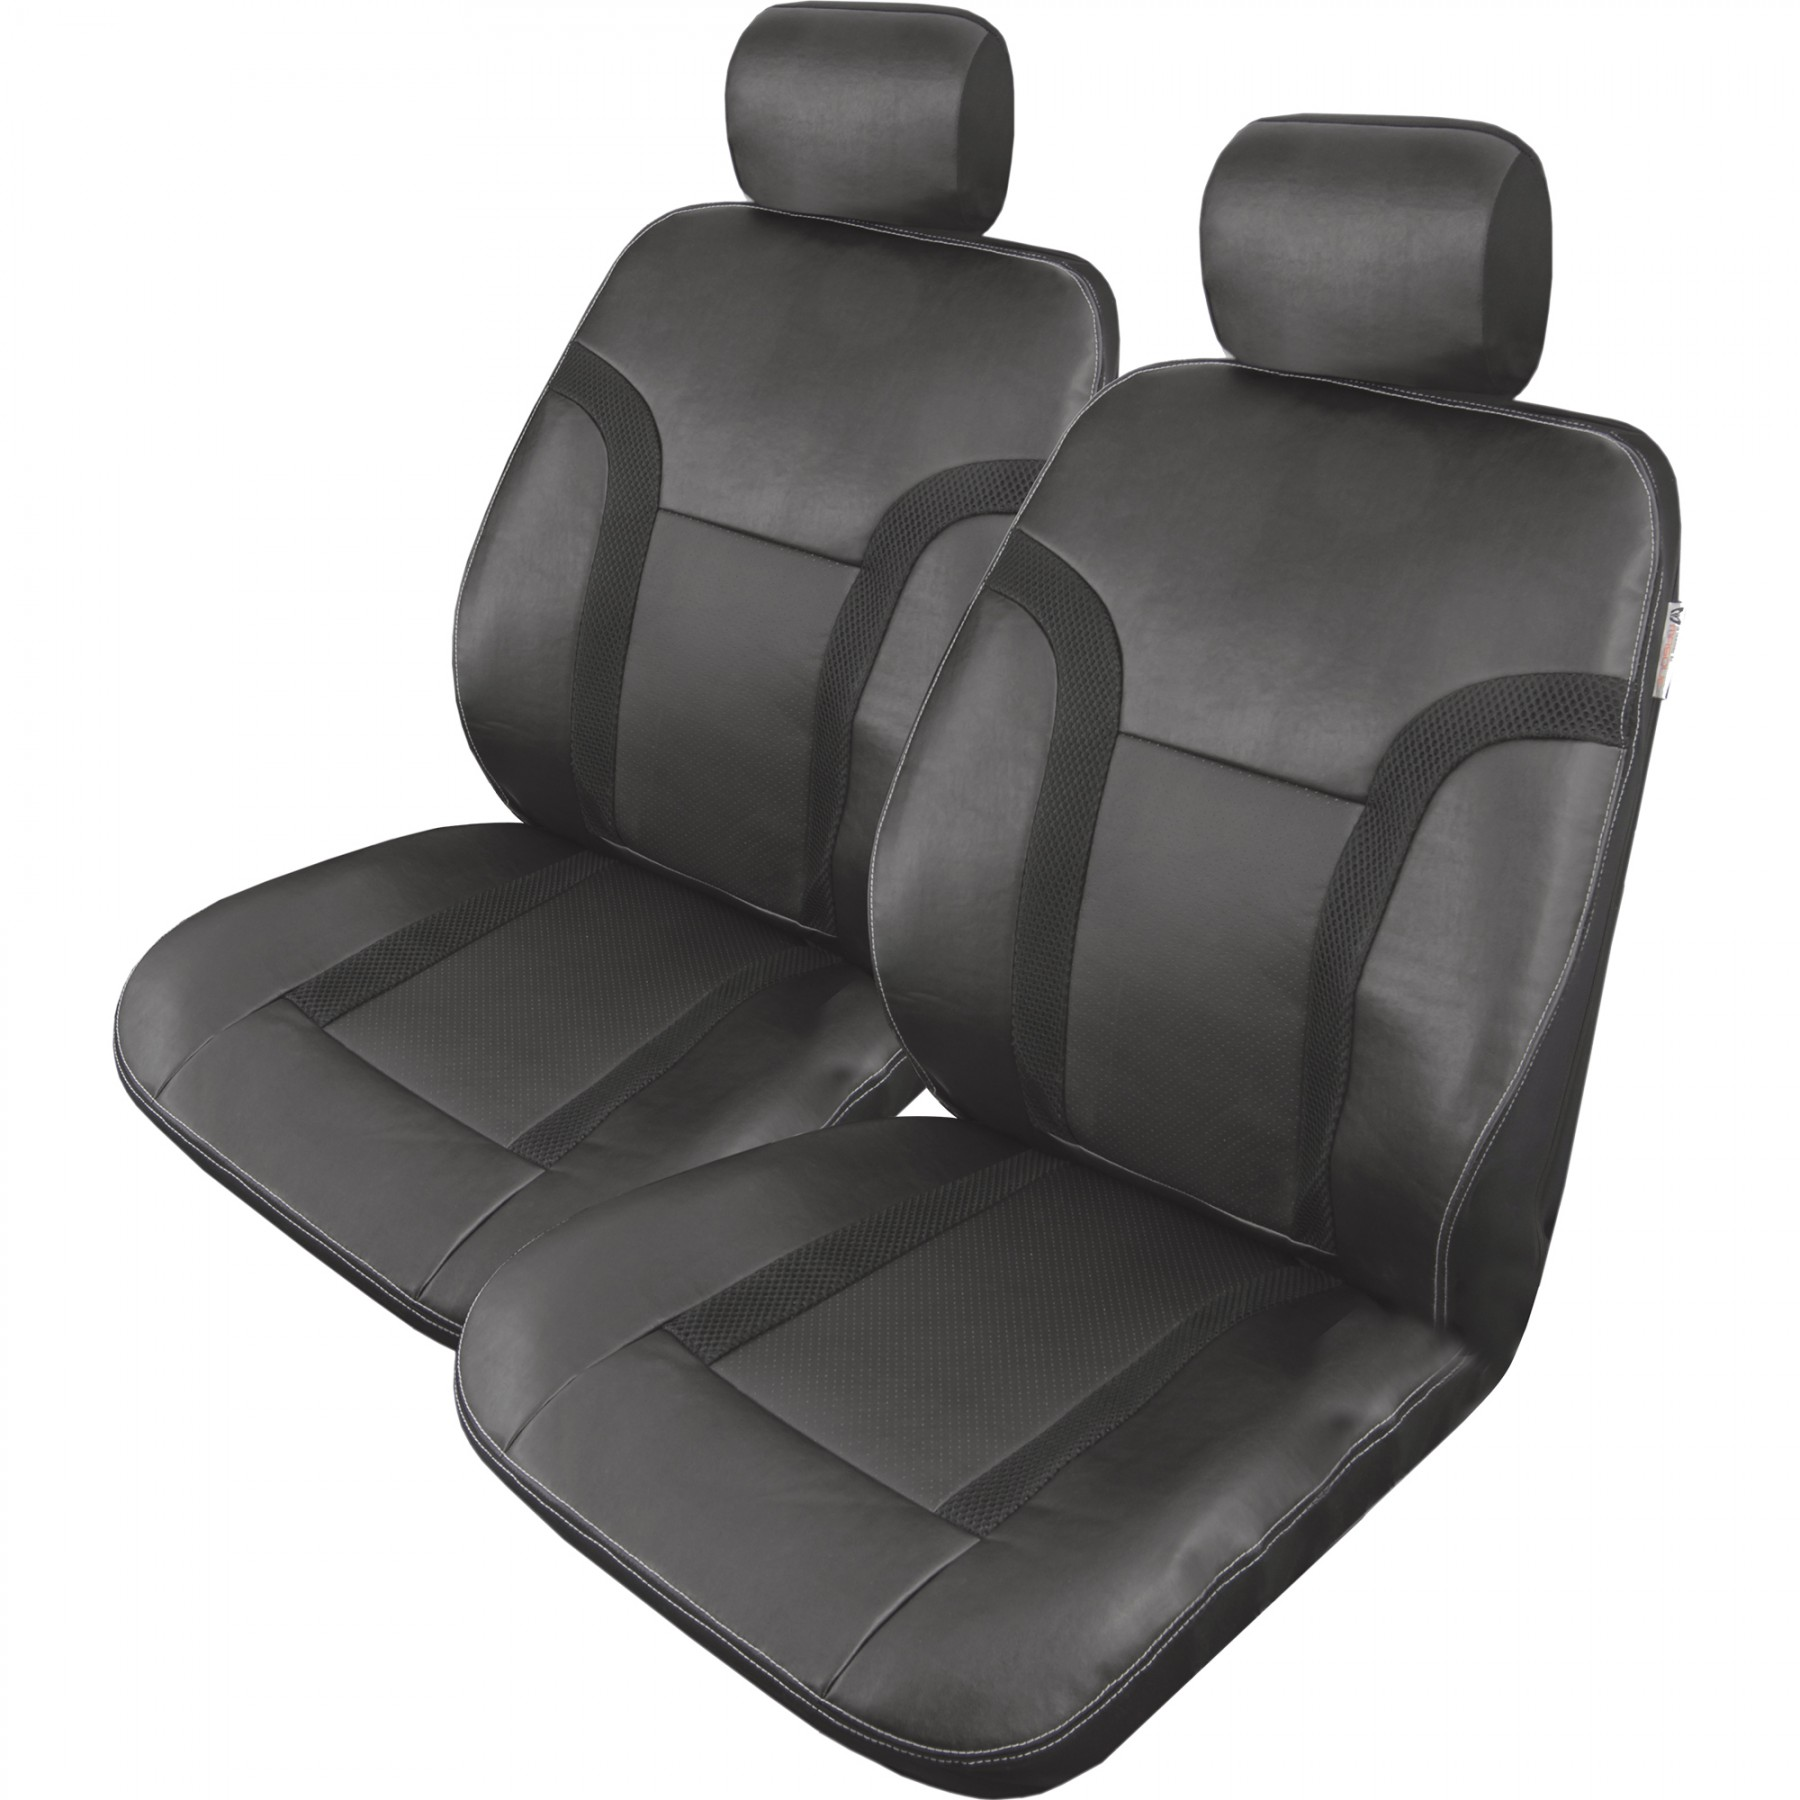 Raptor Truck Front Seat Cover